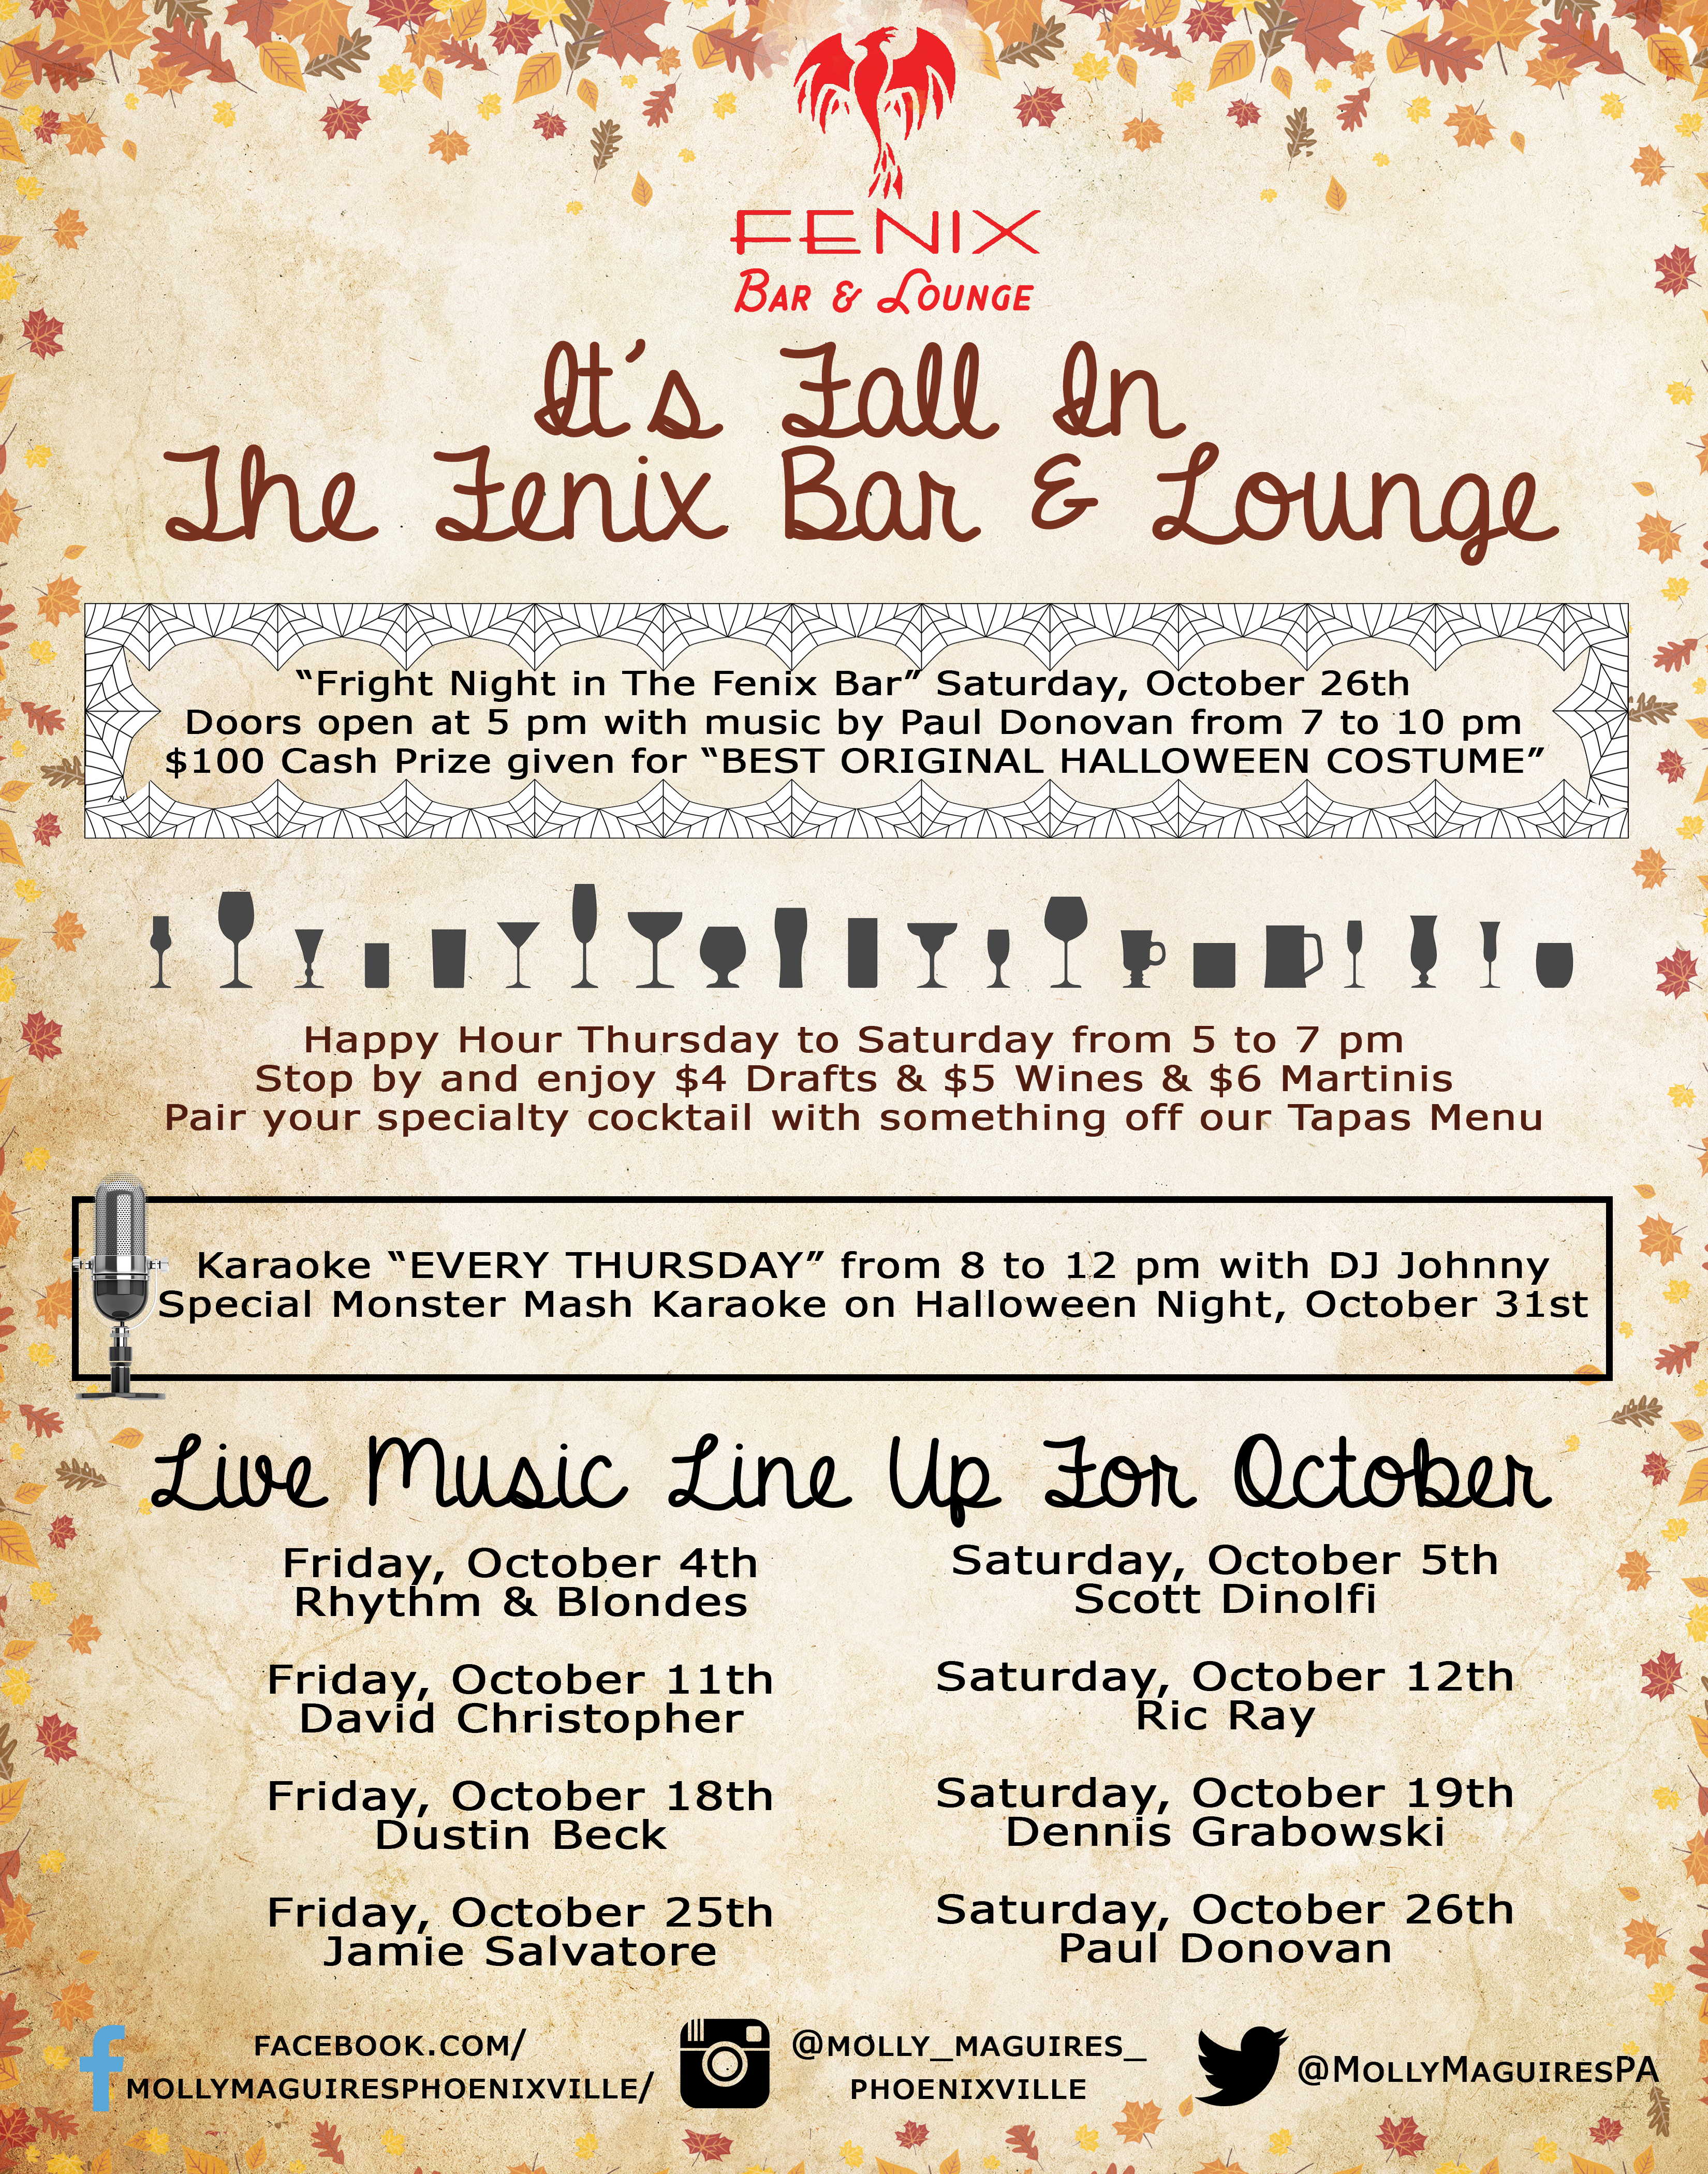 """It's Fall In The Fenix Bar & Lounge. """"Fright Night in The Fenix Bar"""" Saturday, October 26thDoors open at 5 pm with music by Paul Donovan from 7 to 10 pm$100 Cash Prize given for """"BEST ORIGINAL HALLOWEEN COSTUME"""". Happy Hour Thursday to Saturday from 5 to 7 pm Stop by and enjoy $4 Drafts & $5 Wines & $6 Martinis Pair your specialty cocktail with something off our Tapas Menu. Karaoke """"EVERY THURSDAY"""" from 8 to 12 pm with DJ Johnny Special Monster Mash Karaoke on Halloween Night, October 31st. Live Music Line Up For October. Friday, October 4th Rhythm & Blondes  Friday, October 11th David Christopher  Friday, October 18th Dustin Beck  Friday, October 25th Jamie Salvatore. Saturday, October 5th Scott Dinolfi  Saturday, October 12th Ric Ray  Saturday, October 19th Dennis Grabowski  Saturday, October 26th Paul Donovan."""